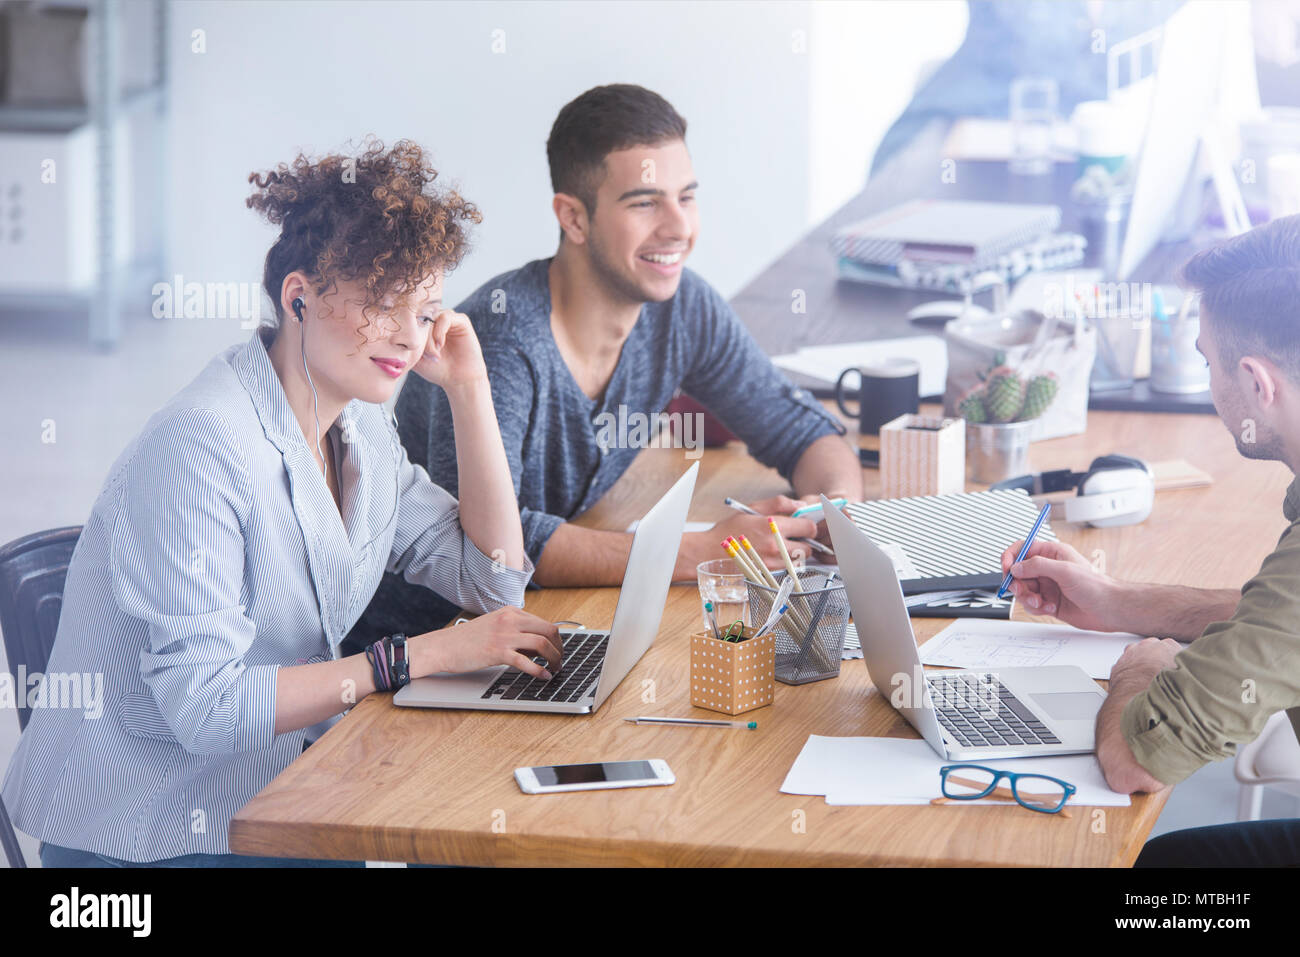 Colleagues having a joyful discussion in their office during a break - Stock Image